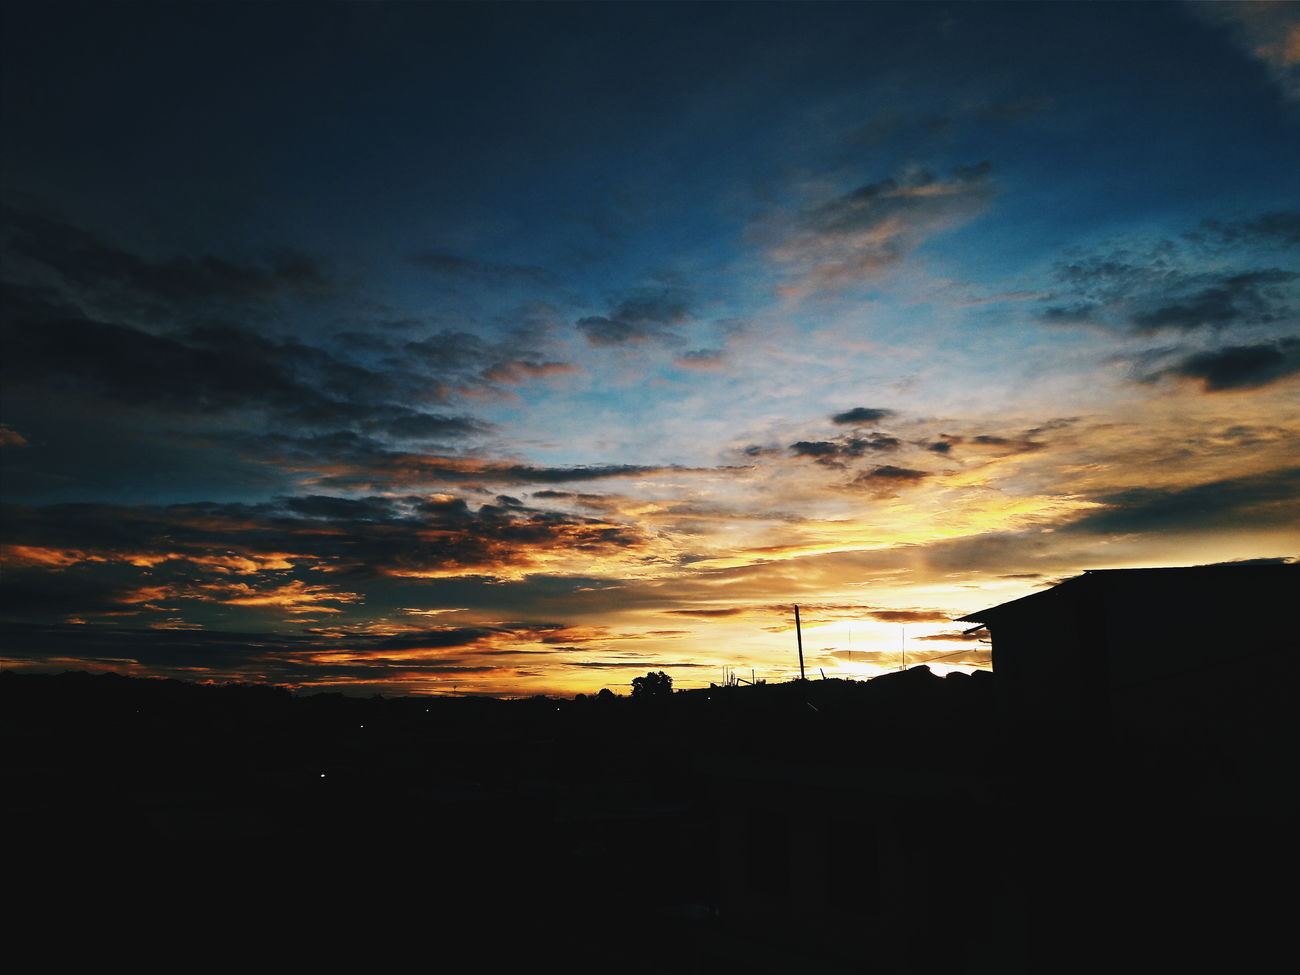 VSCO Vscocam Vscogood Vscogrid Sky Skyporn Landscape Photo Color Sunset Photooftheday Sunset Landscapephotography Photographer Photogrid Popular Photos Nature Photography First Eyeem Photo Guatemala ExploreEverything Instadaily Instagram Good Photography Sky l